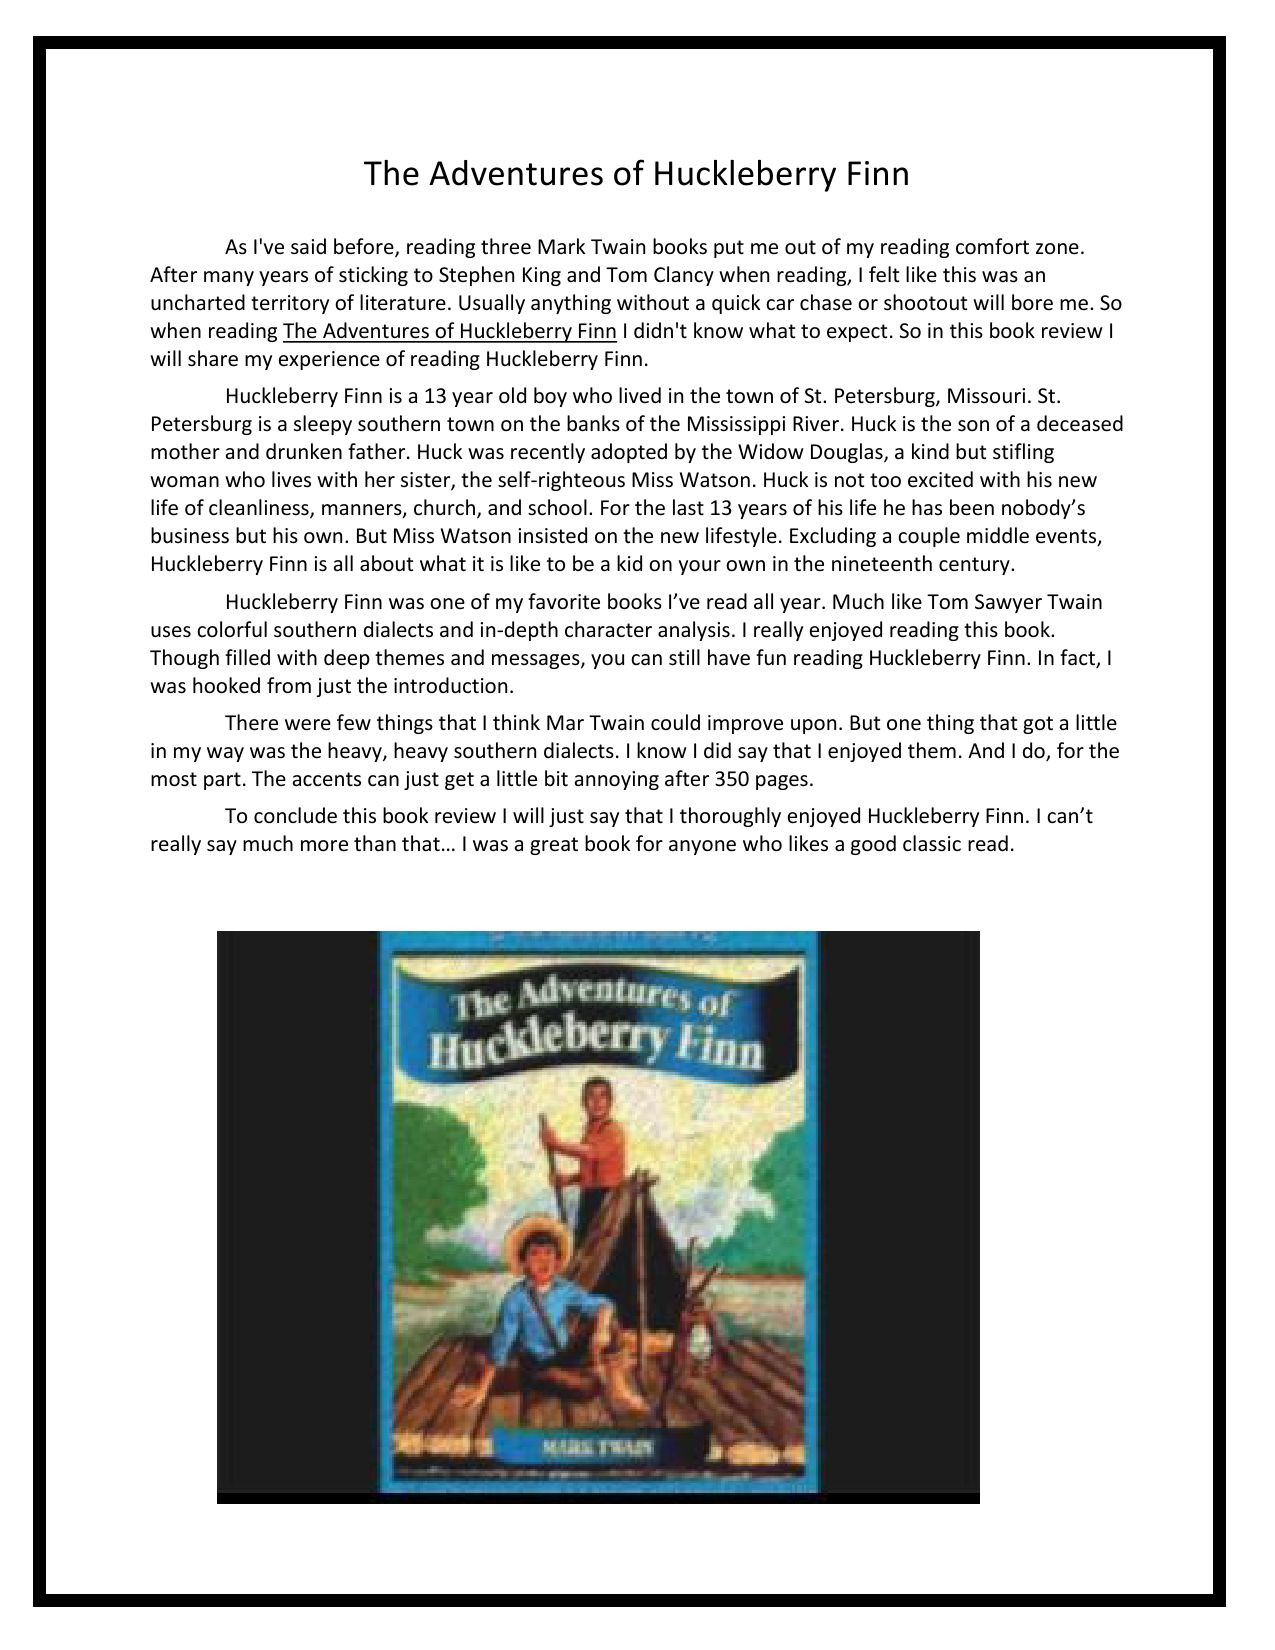 an analysis of mark twains book the adventures of huckleberry finn Adventures of huckleberry finn, with all the original illustrations – free online – mark twain project (printed 2003 university of california press, online 2009 mtpo) rich editorial material accompanies text, including detailed historical notes, glossaries, maps, and documentary appendixes, which record the author's revisions as well as.